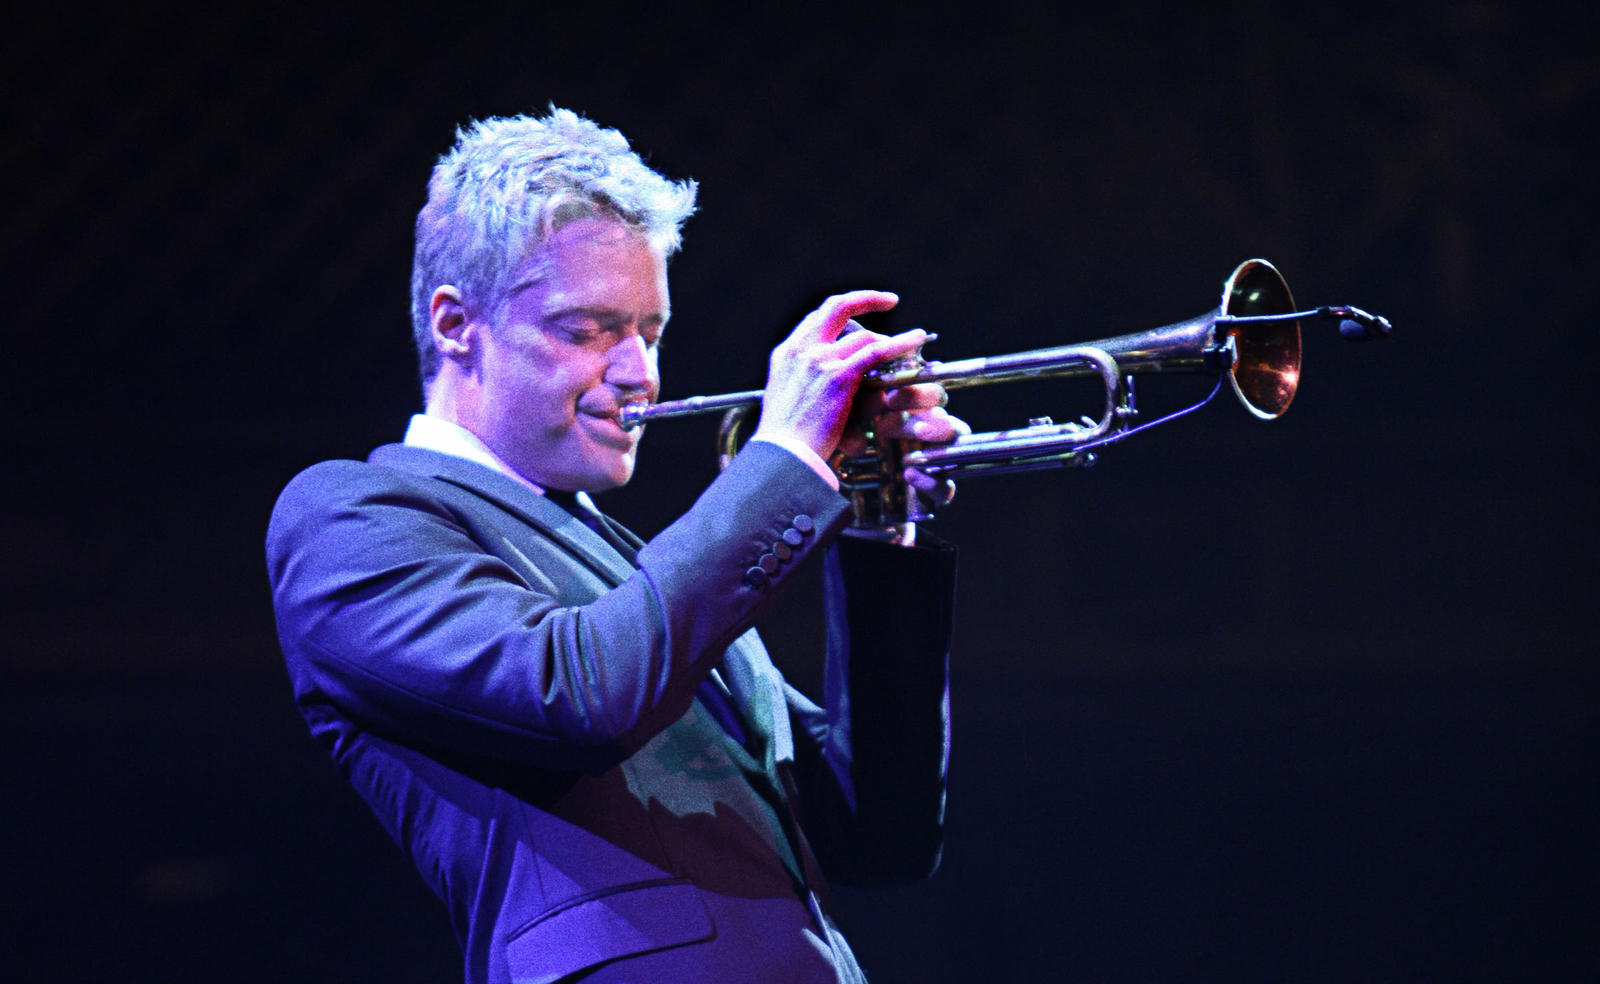 Chris Botti at The Blue Note